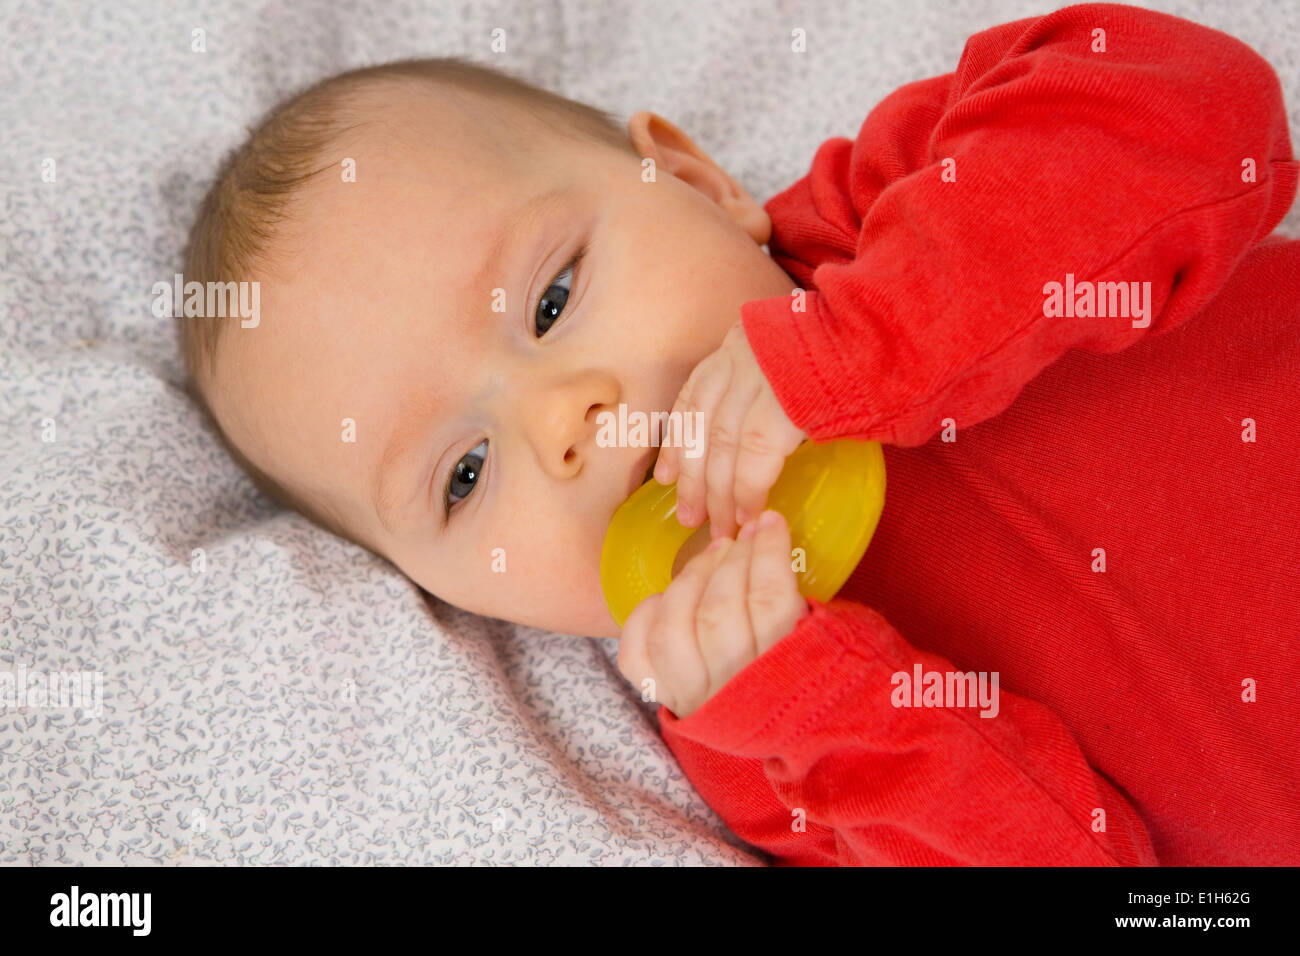 7 month old baby girl in crib with teething ring in her mouth - Stock Image